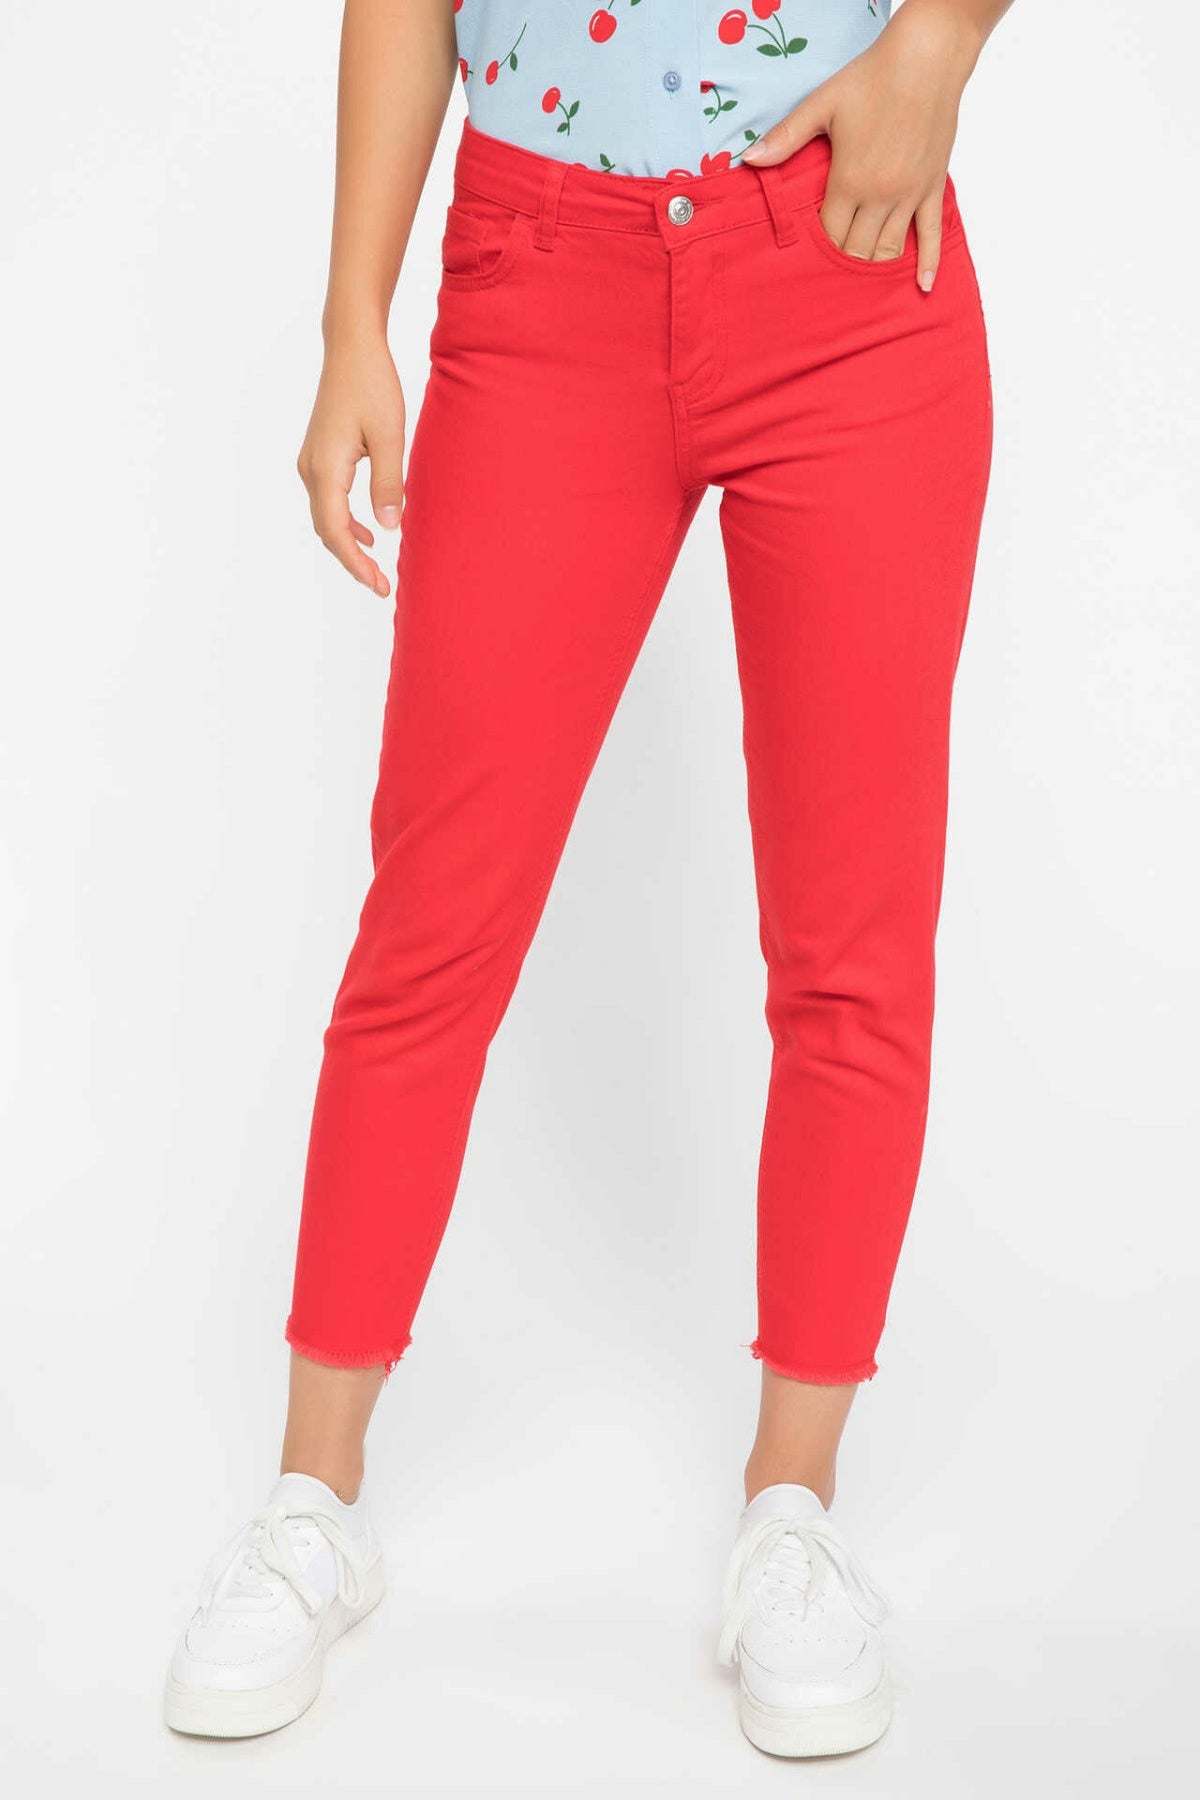 Cotton  Casual Red Jeans